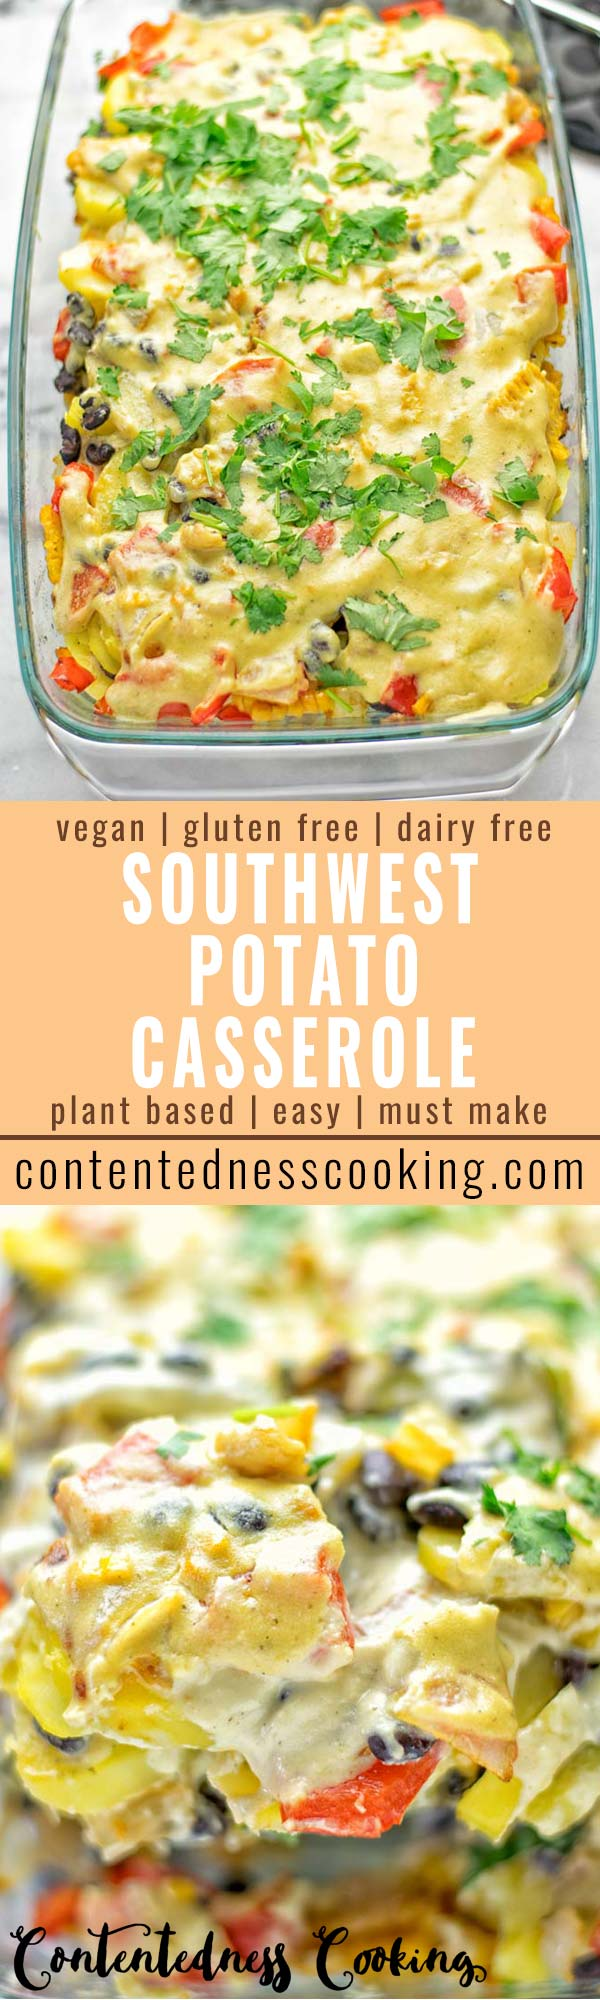 Southwest Potato Casserole | #vegan #glutenfree #dairyfree #plantbased #contentednesscooking